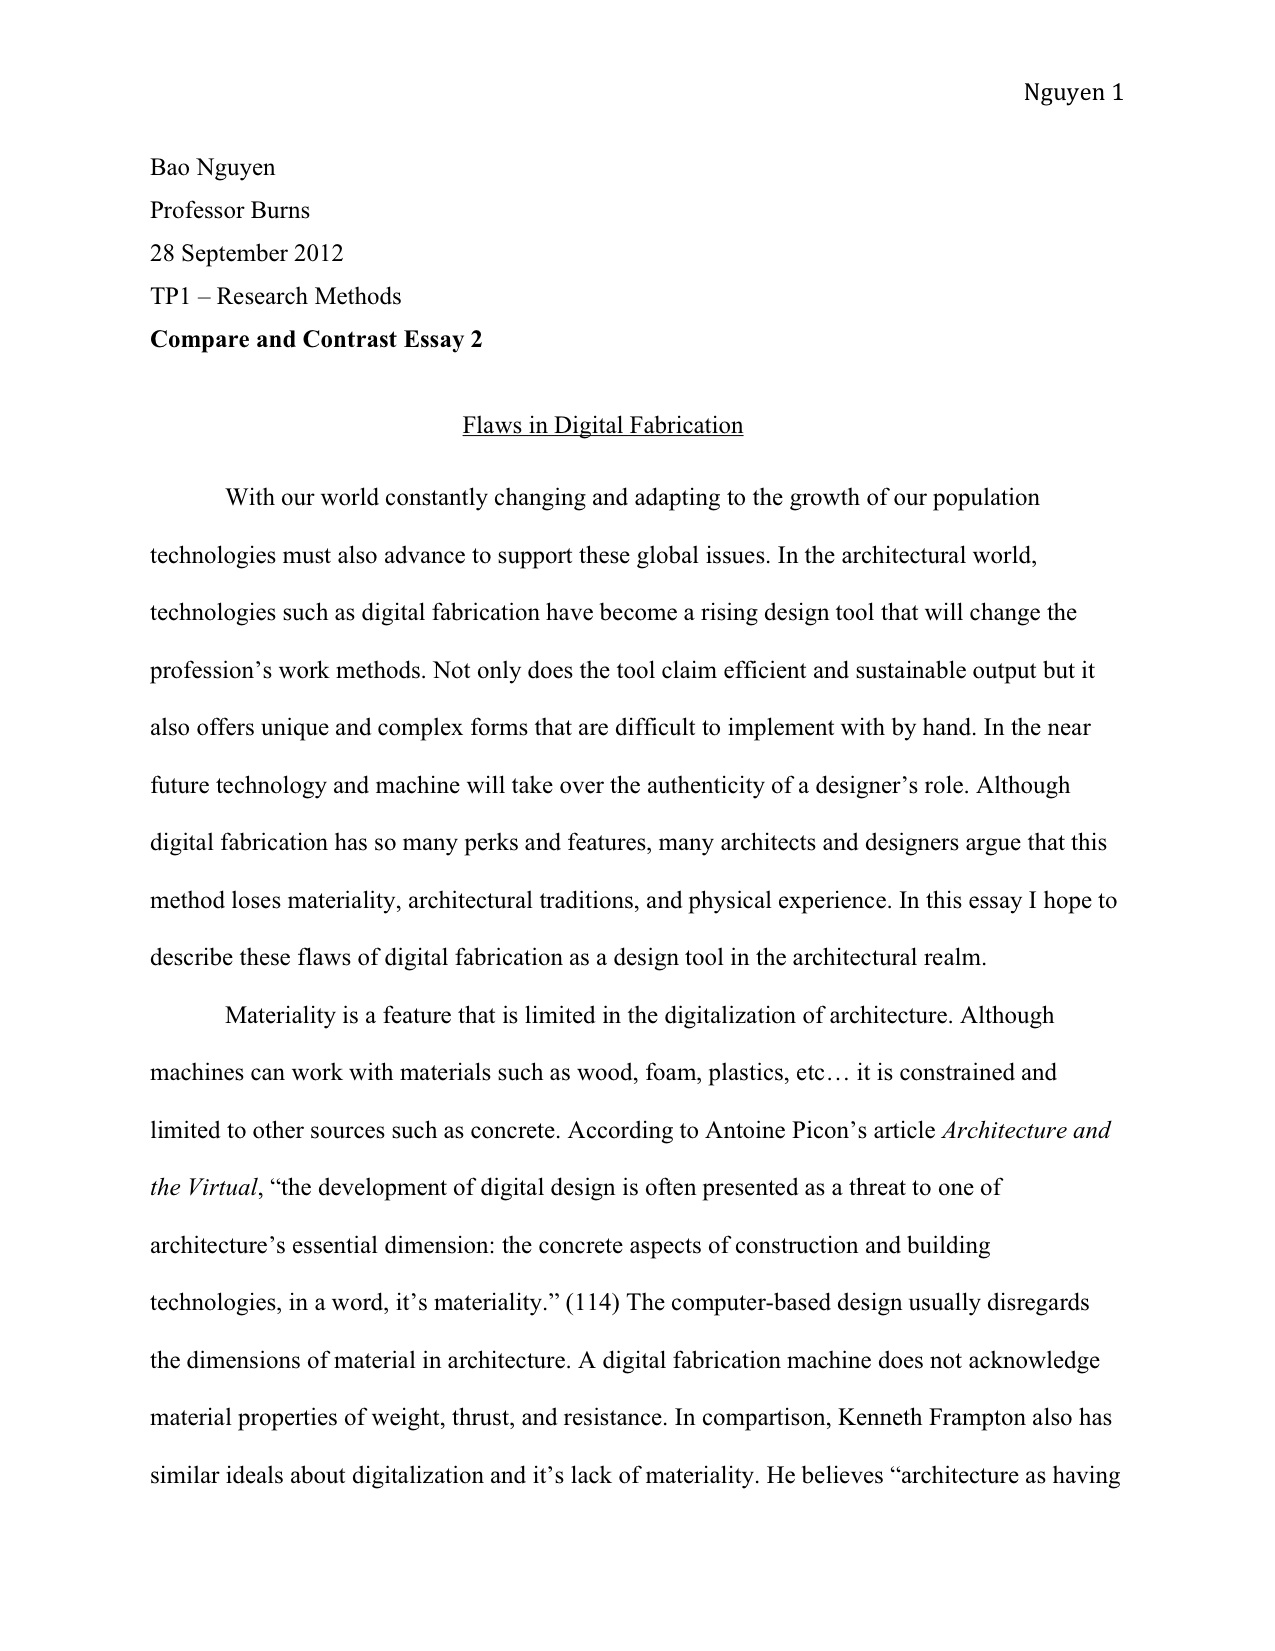 writing a thesis paragraph for an essay The introduction is the first paragraph in your essay, and it should accomplish a few specific goals: capture the reader's interest, introduce the topic, and make a claim or express an opinion in a thesis statement.